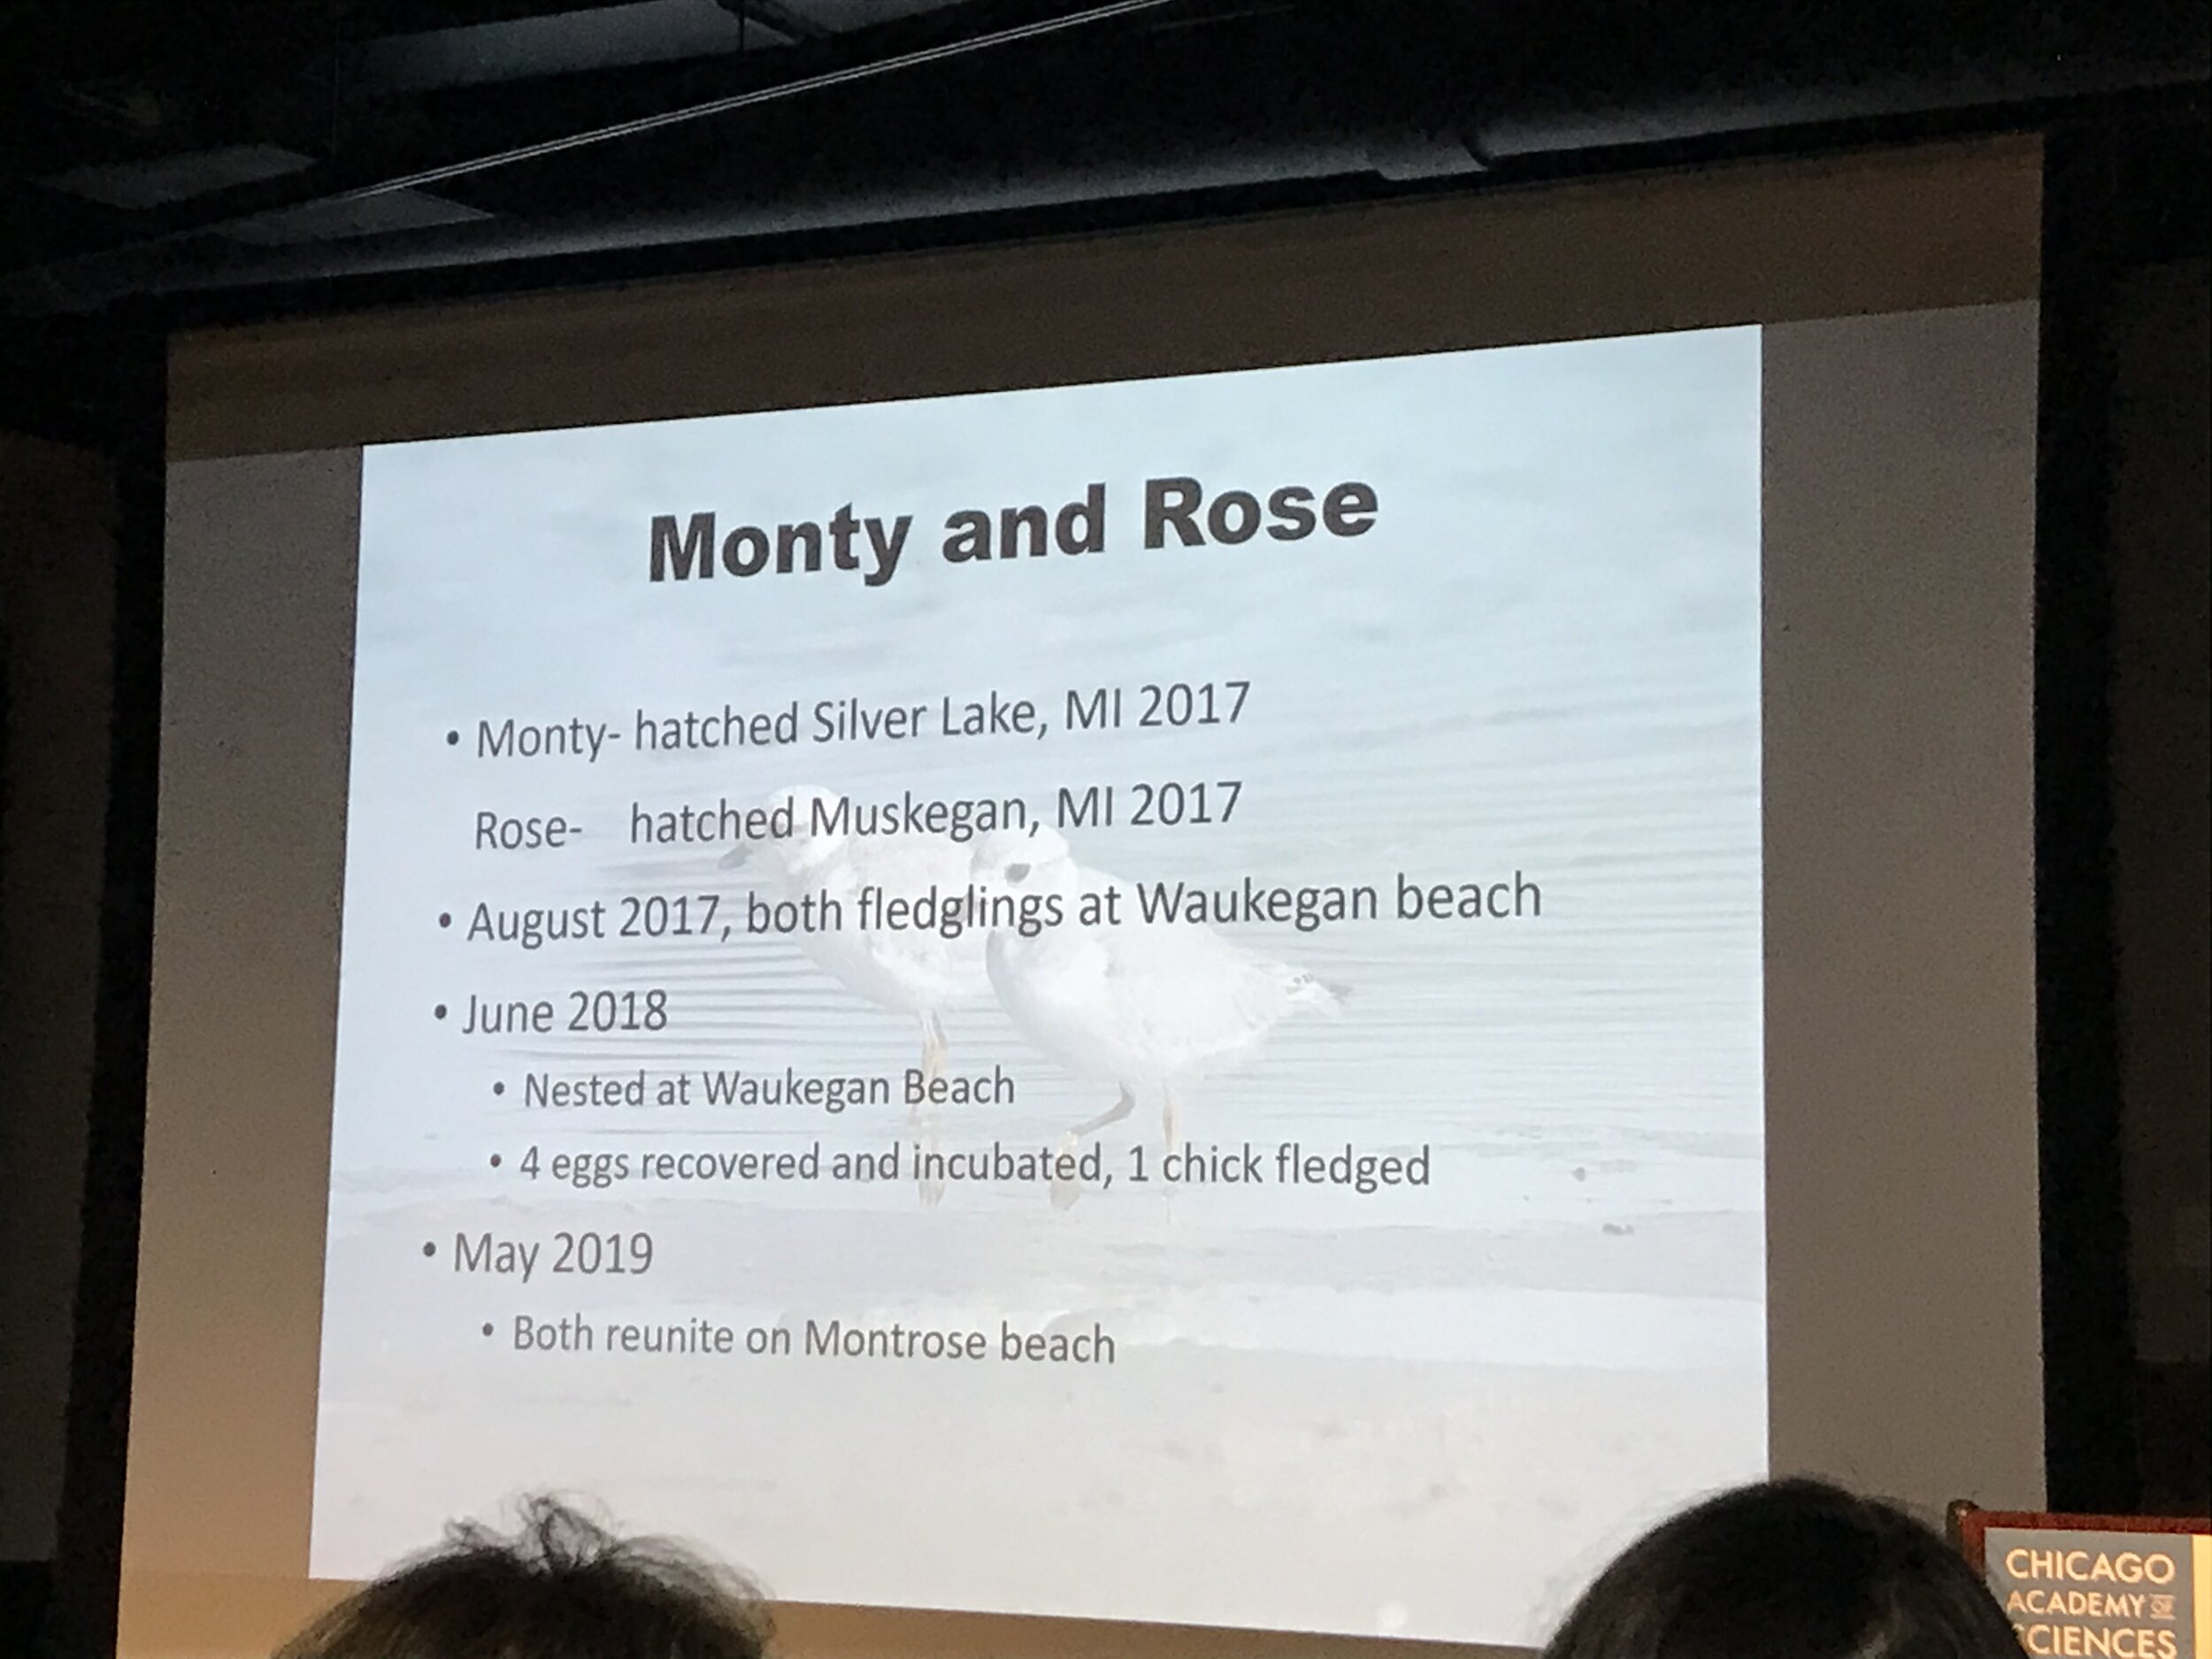 Slides from Dr. Cuthbert's presentation showing Monty and Rose's origins story and Chicago's impact Photos: Aerin Tedesco